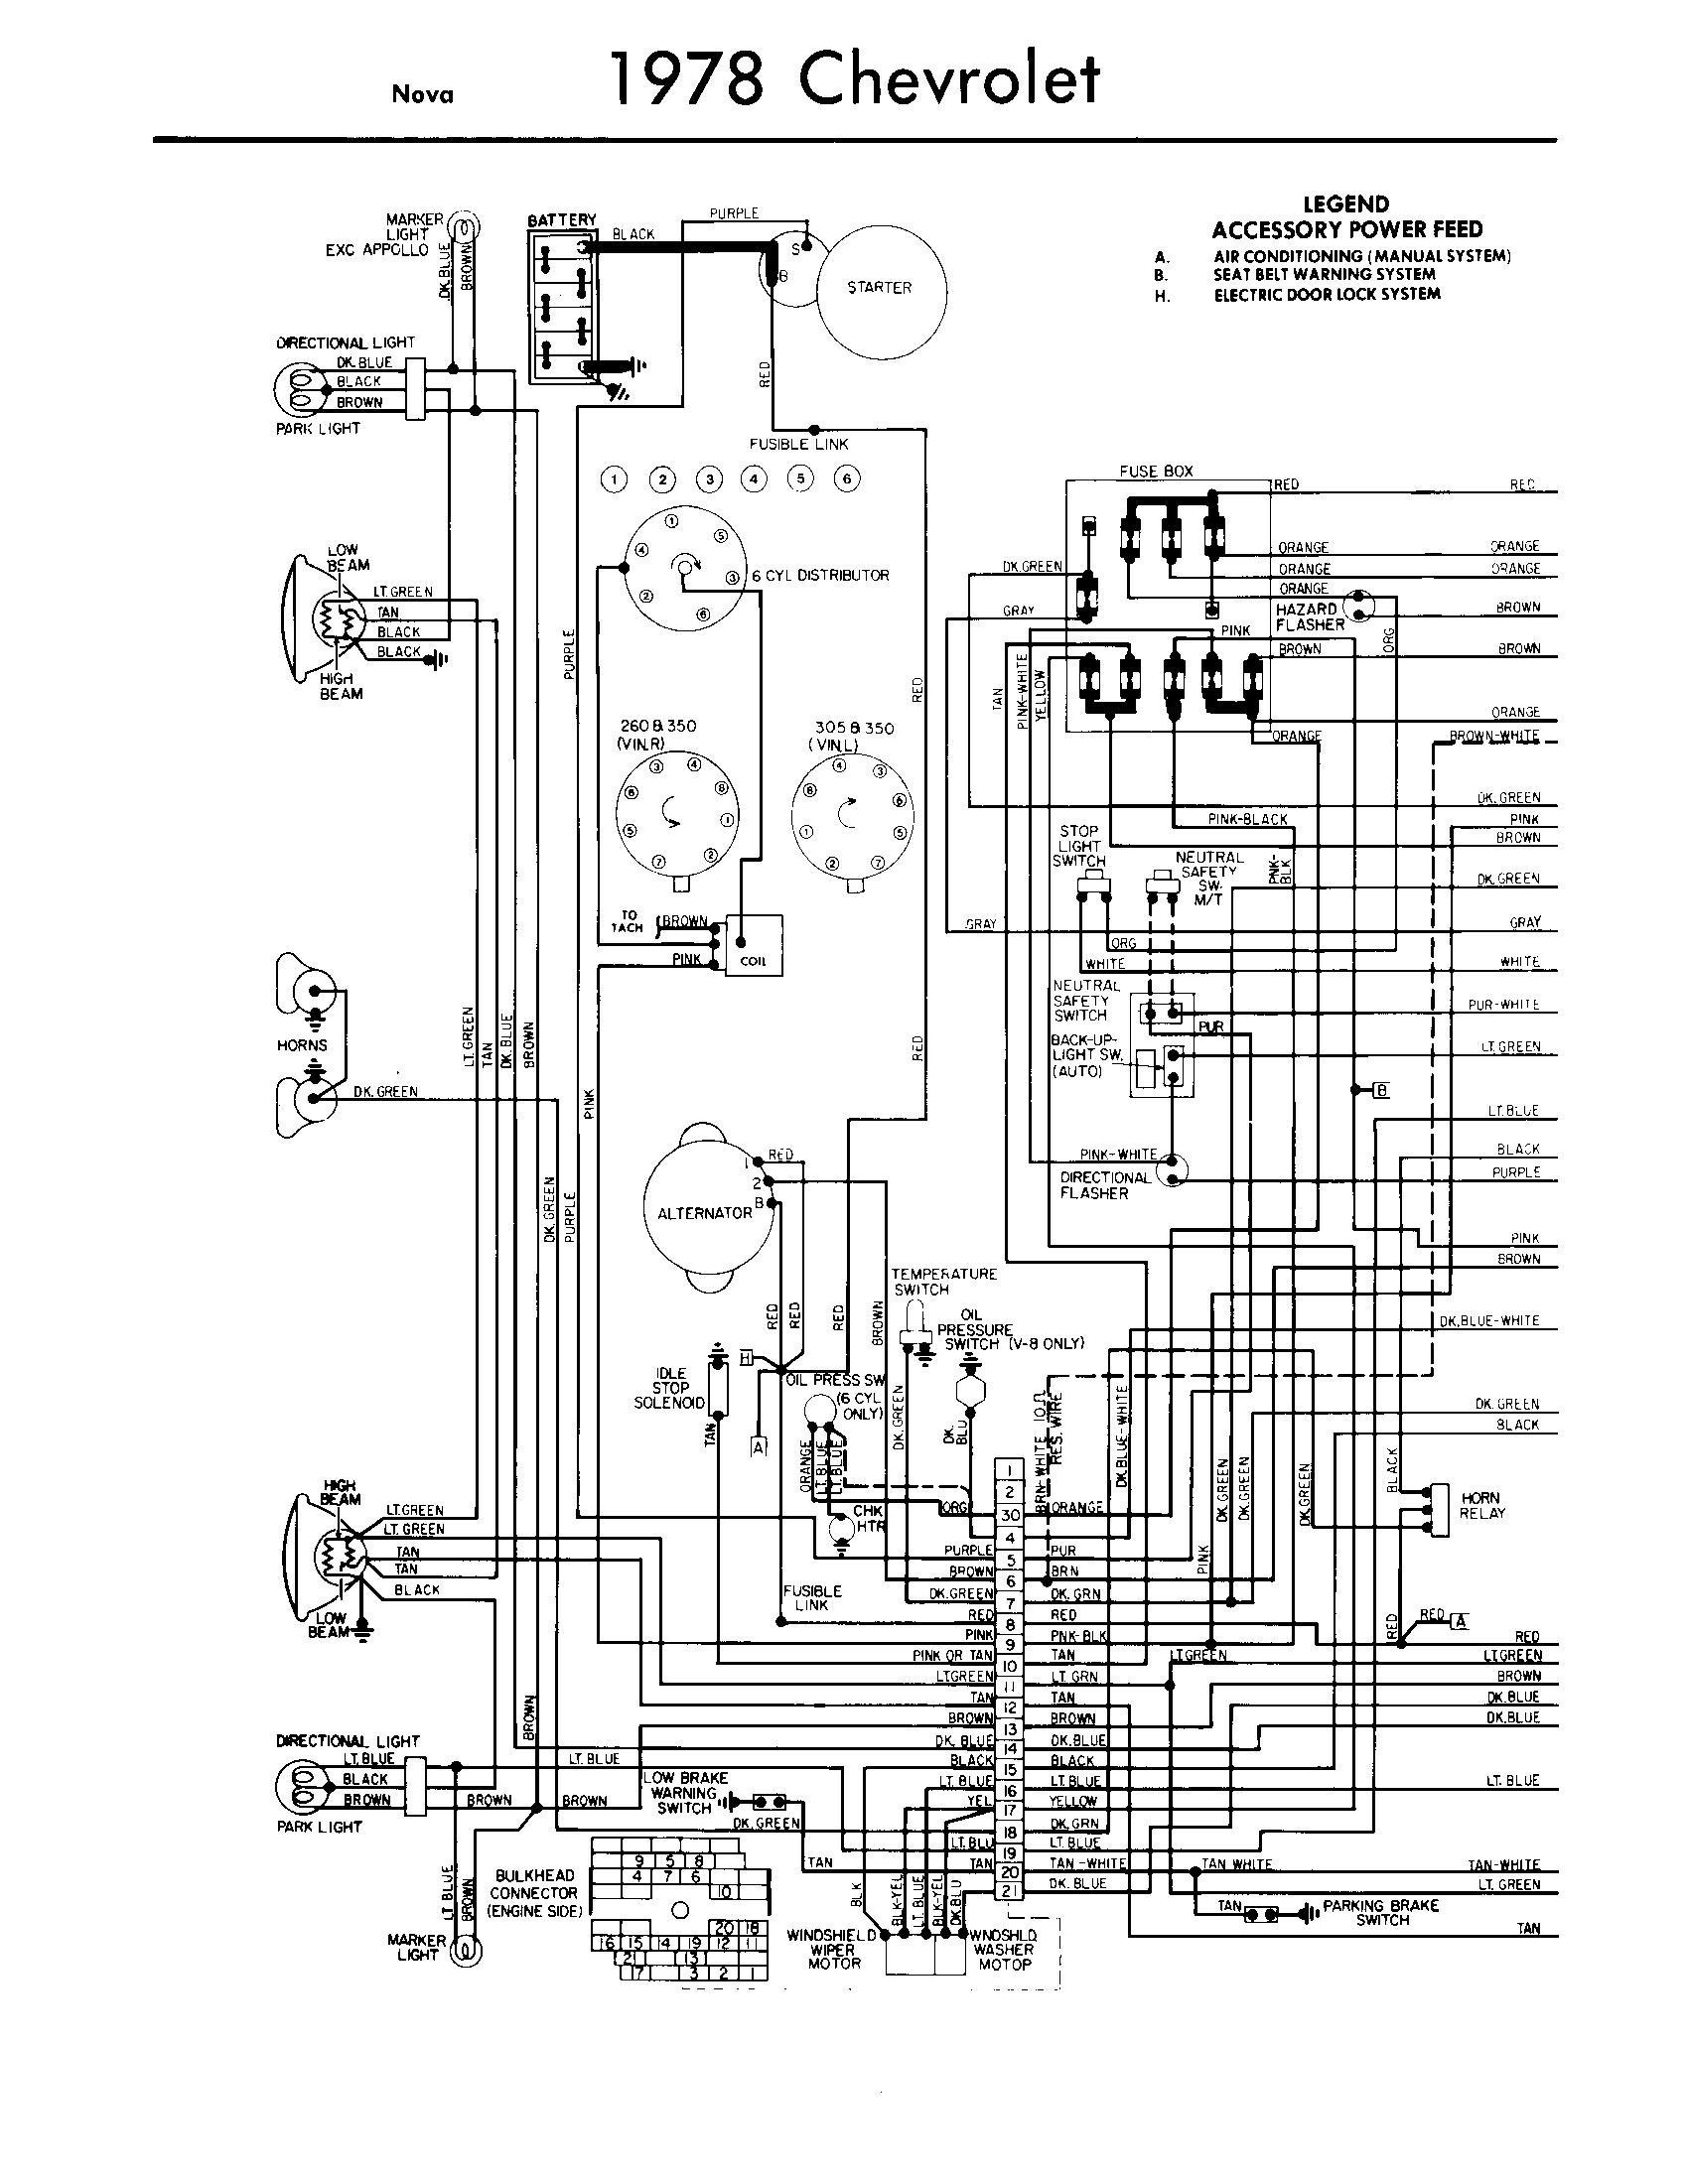 1968 Ford Ranger Solenoid Wiring Library Delco Remy Alternator Diagram 07 Volvo 67 72 Chevy Truck 1977 Data Of